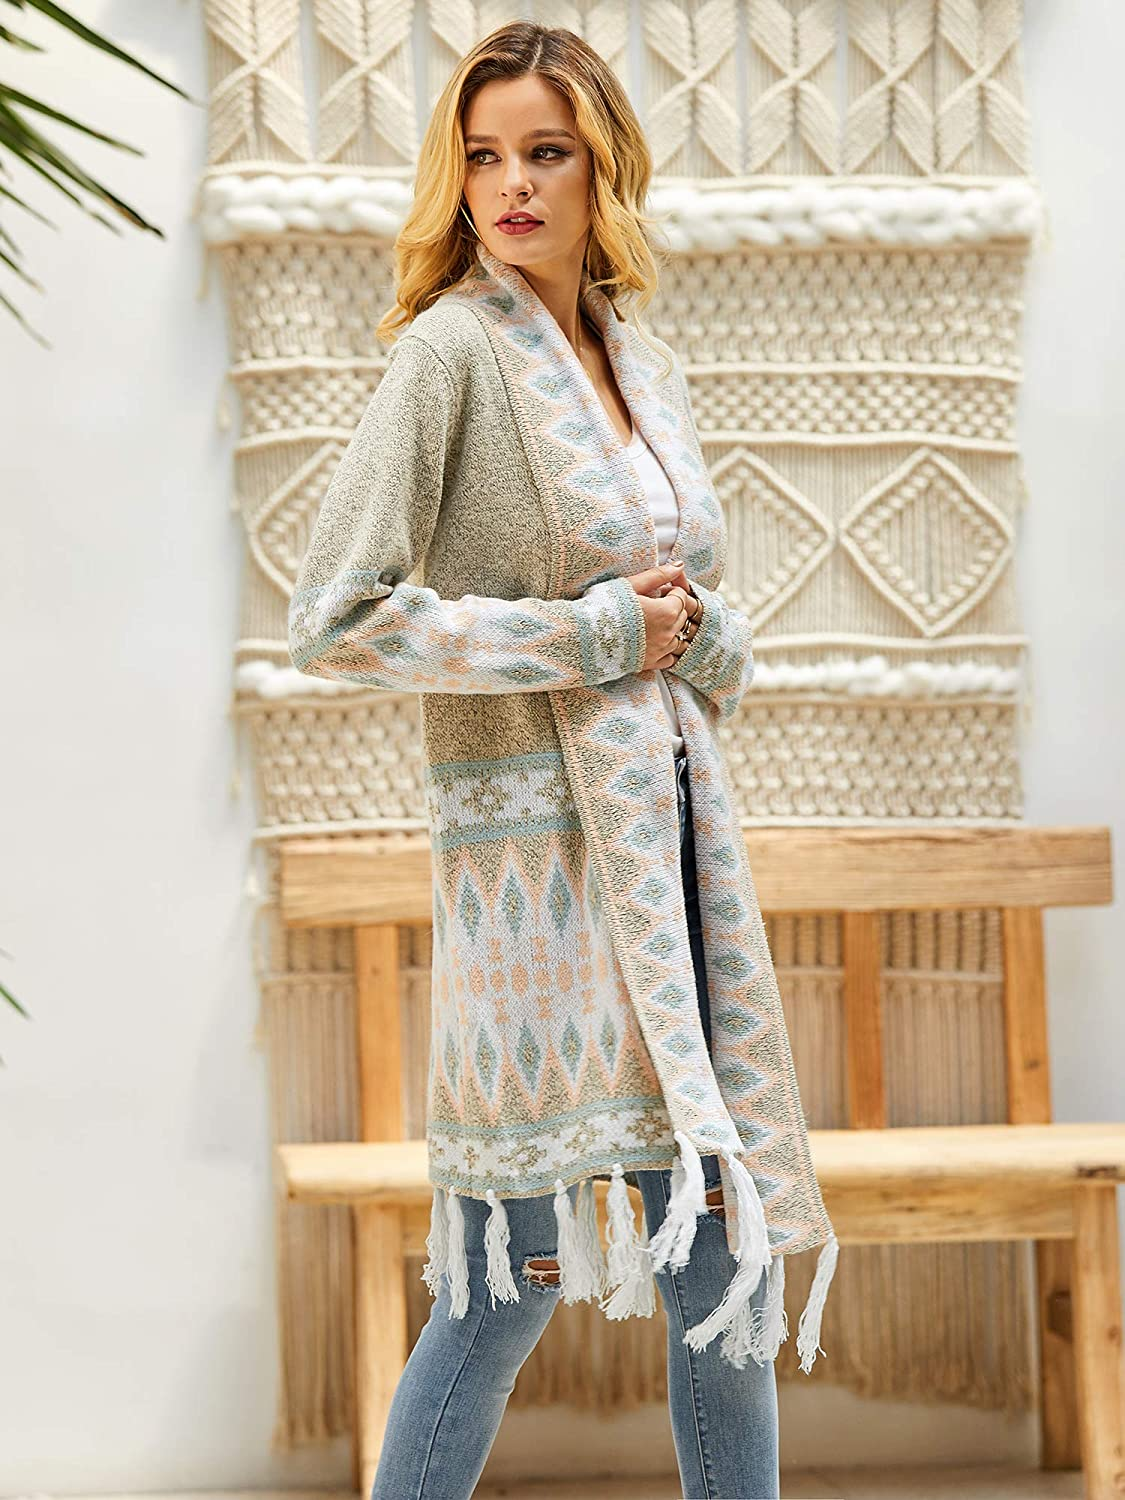 Ladies Colorful 1920s Sweaters and Cardigans History Misassy Womens Boho Open Front Long Cardigans Sweater Loose Long Sleeve Aztec Embroidery Tassels Kimono Duster Outwear $37.88 AT vintagedancer.com